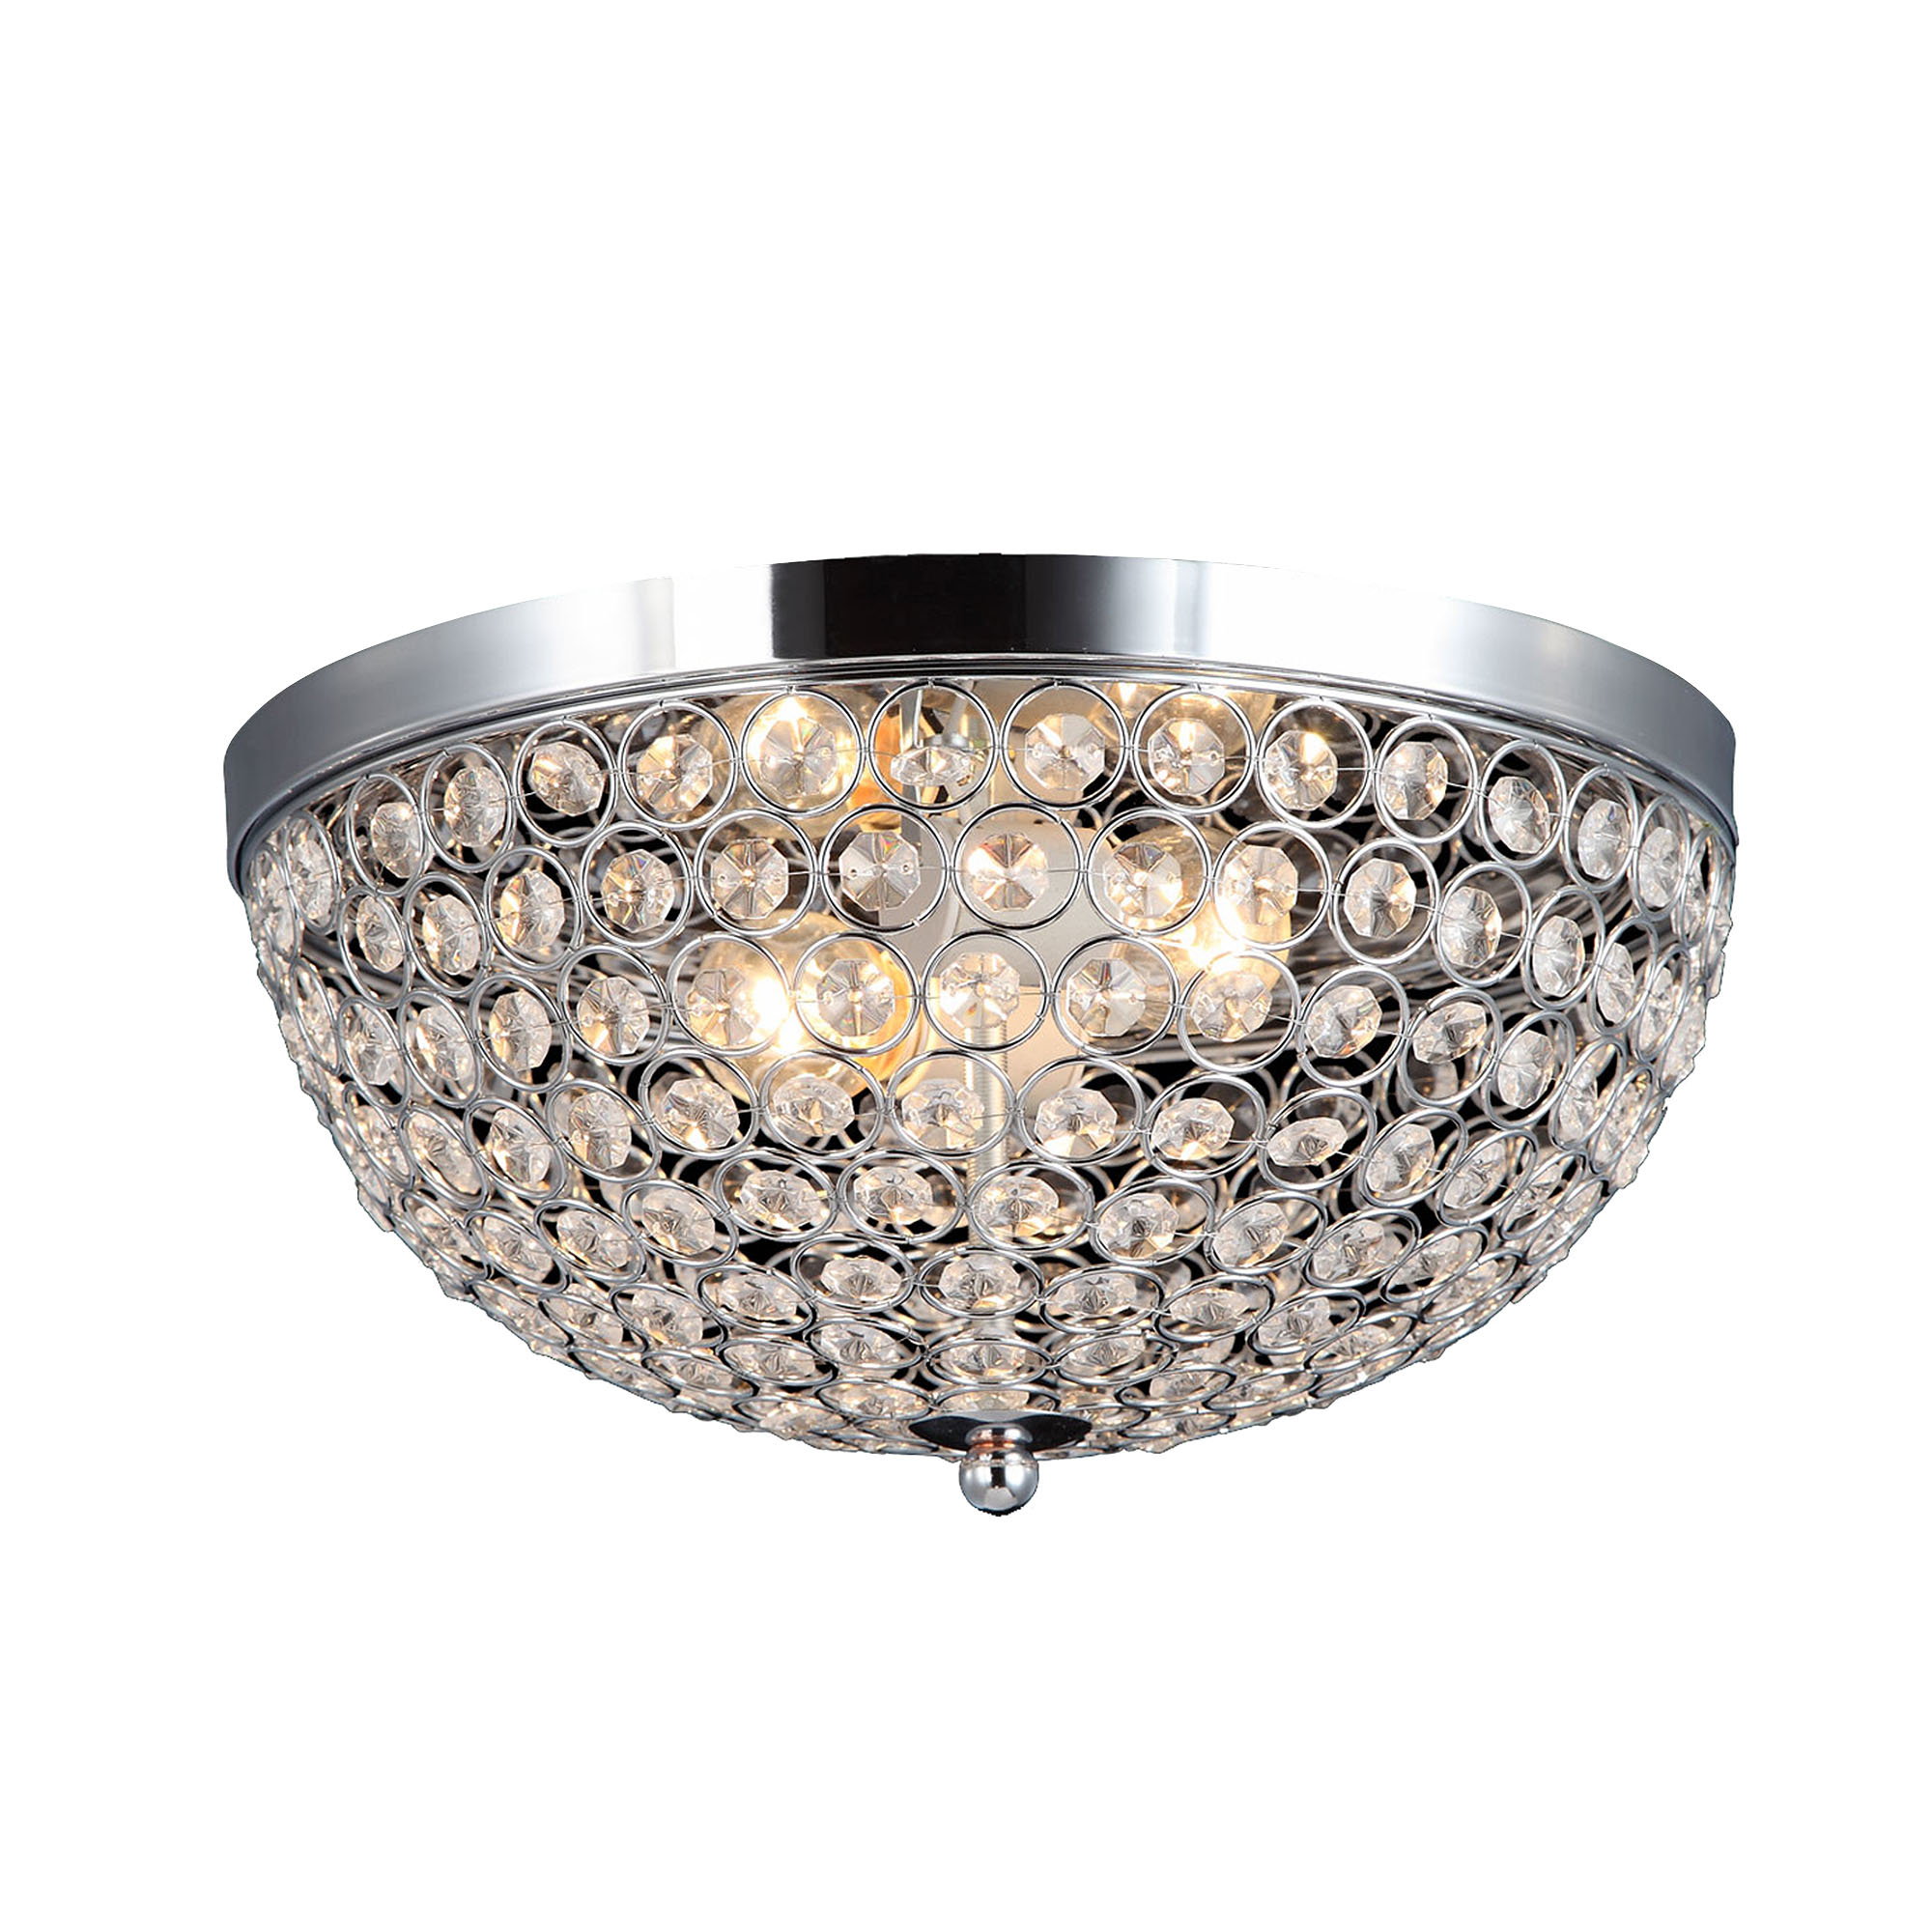 Elegant Designs Elipse Crystal Flush Mount